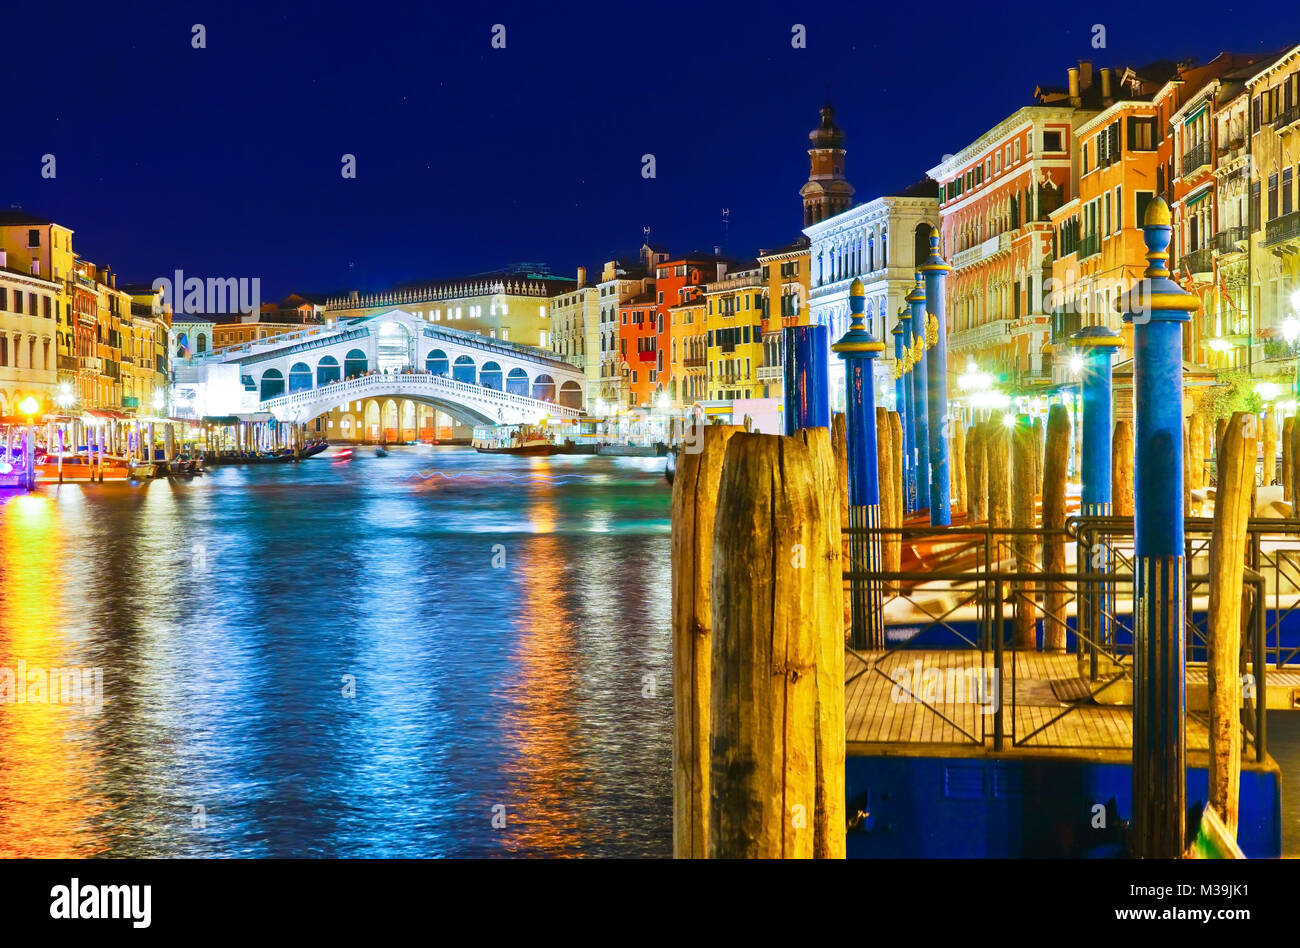 View of the Rialto Bridge and Grand Canal in Venice at night. Stock Photo